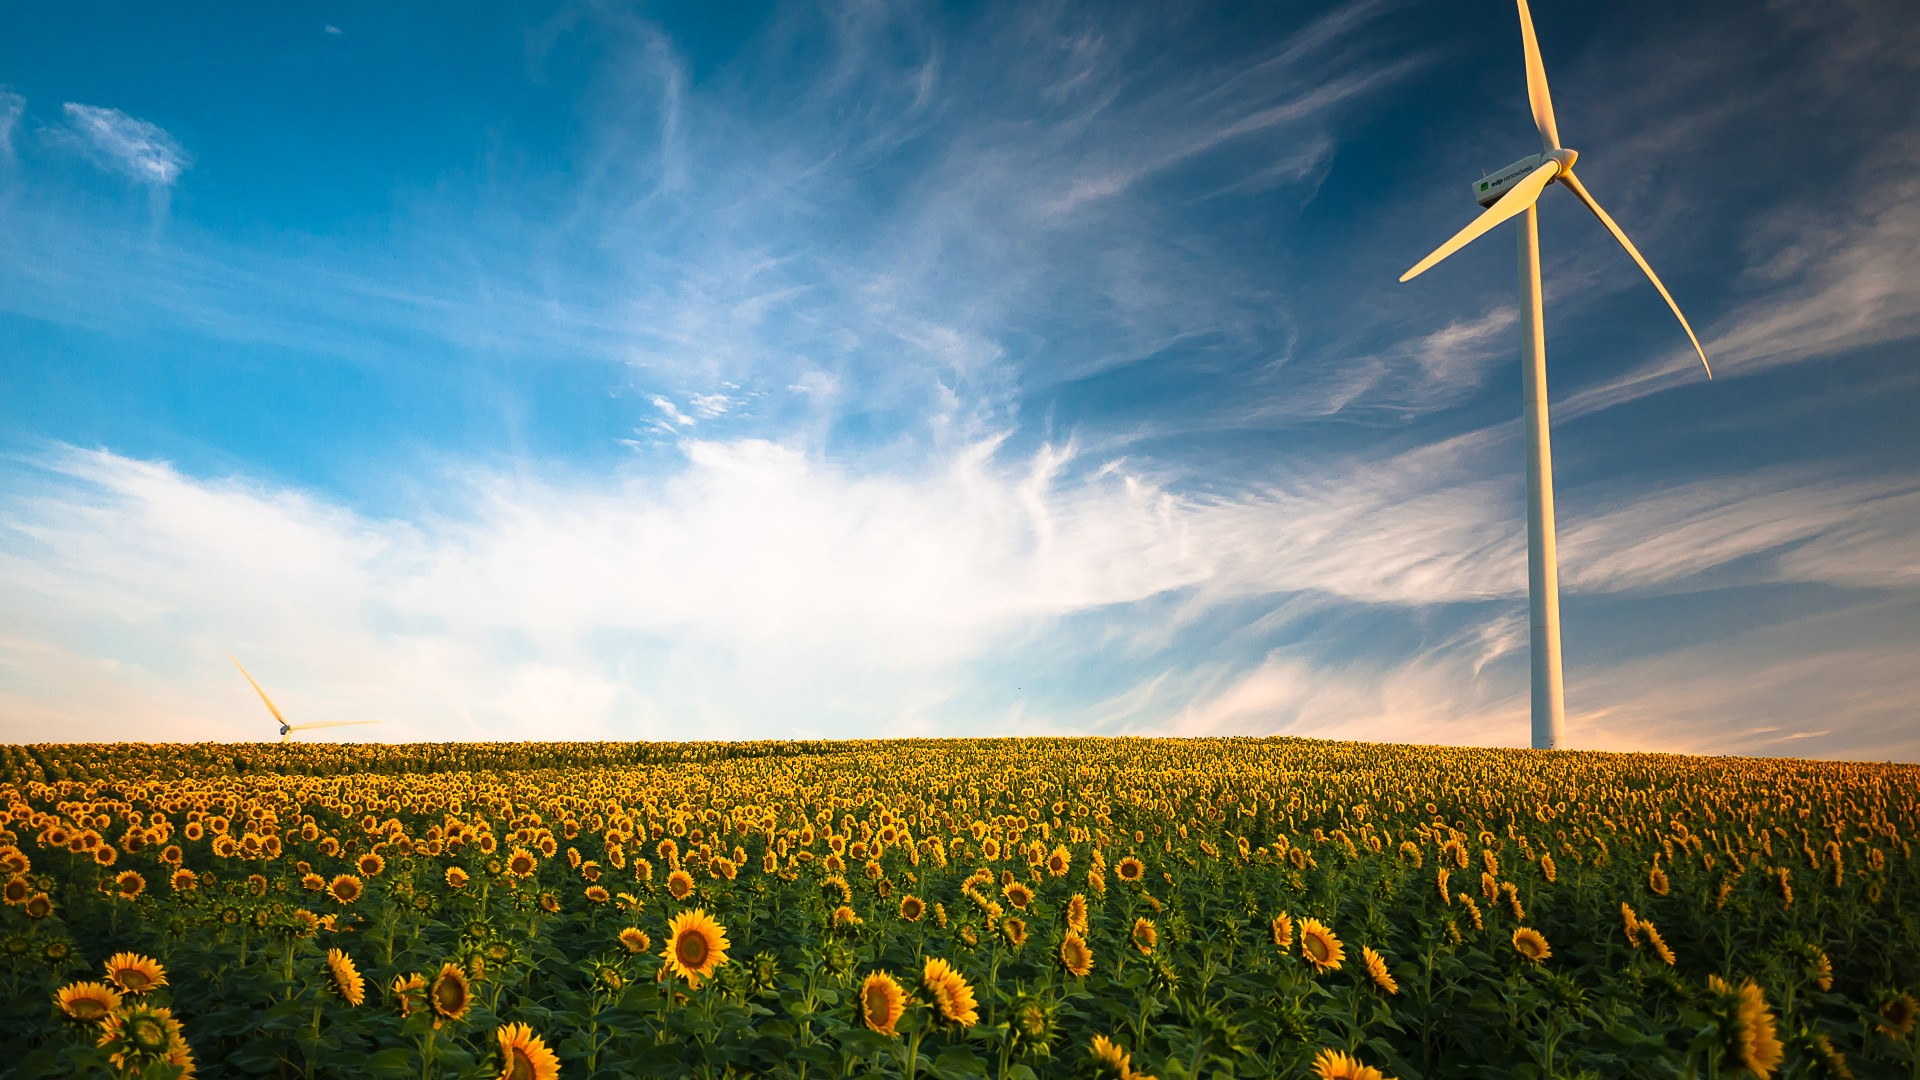 Ultra Hd Wallpapers Cars Wind Turbine Sunflower Field 4k Wallpapers Hd Wallpapers